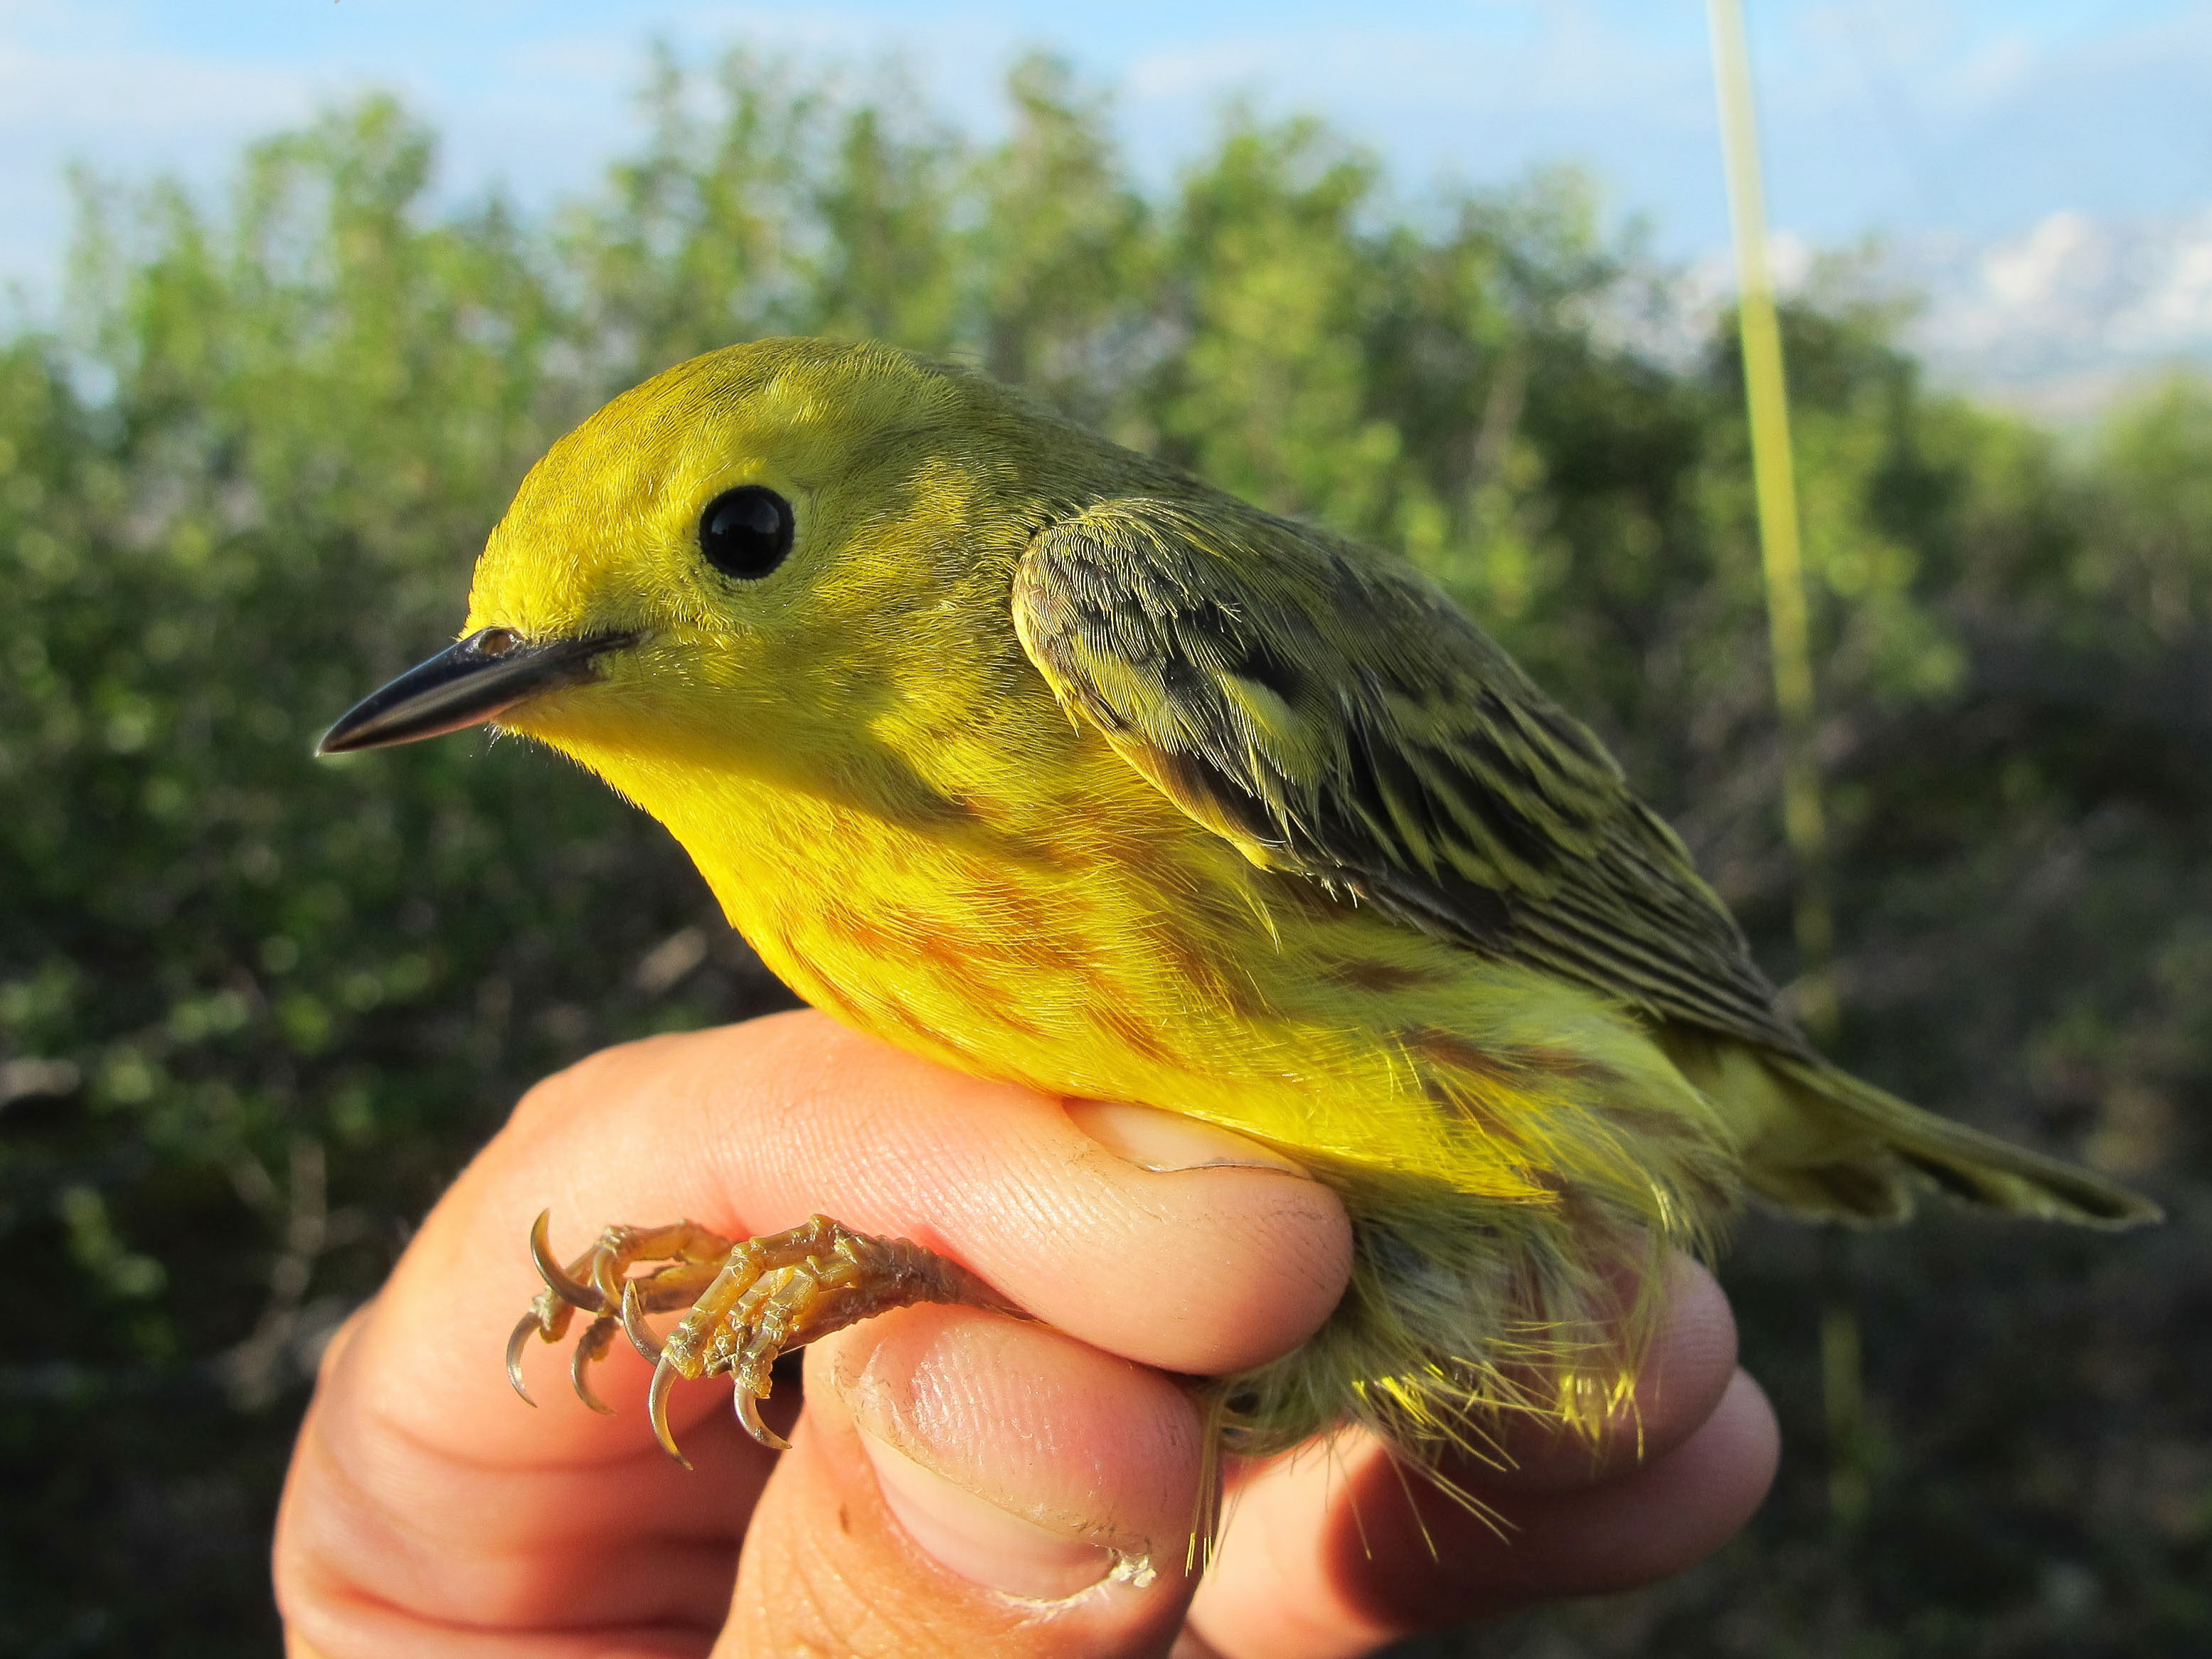 The spread of woody shrubs into tundra landscapes could benefit some birds — at last in the short term